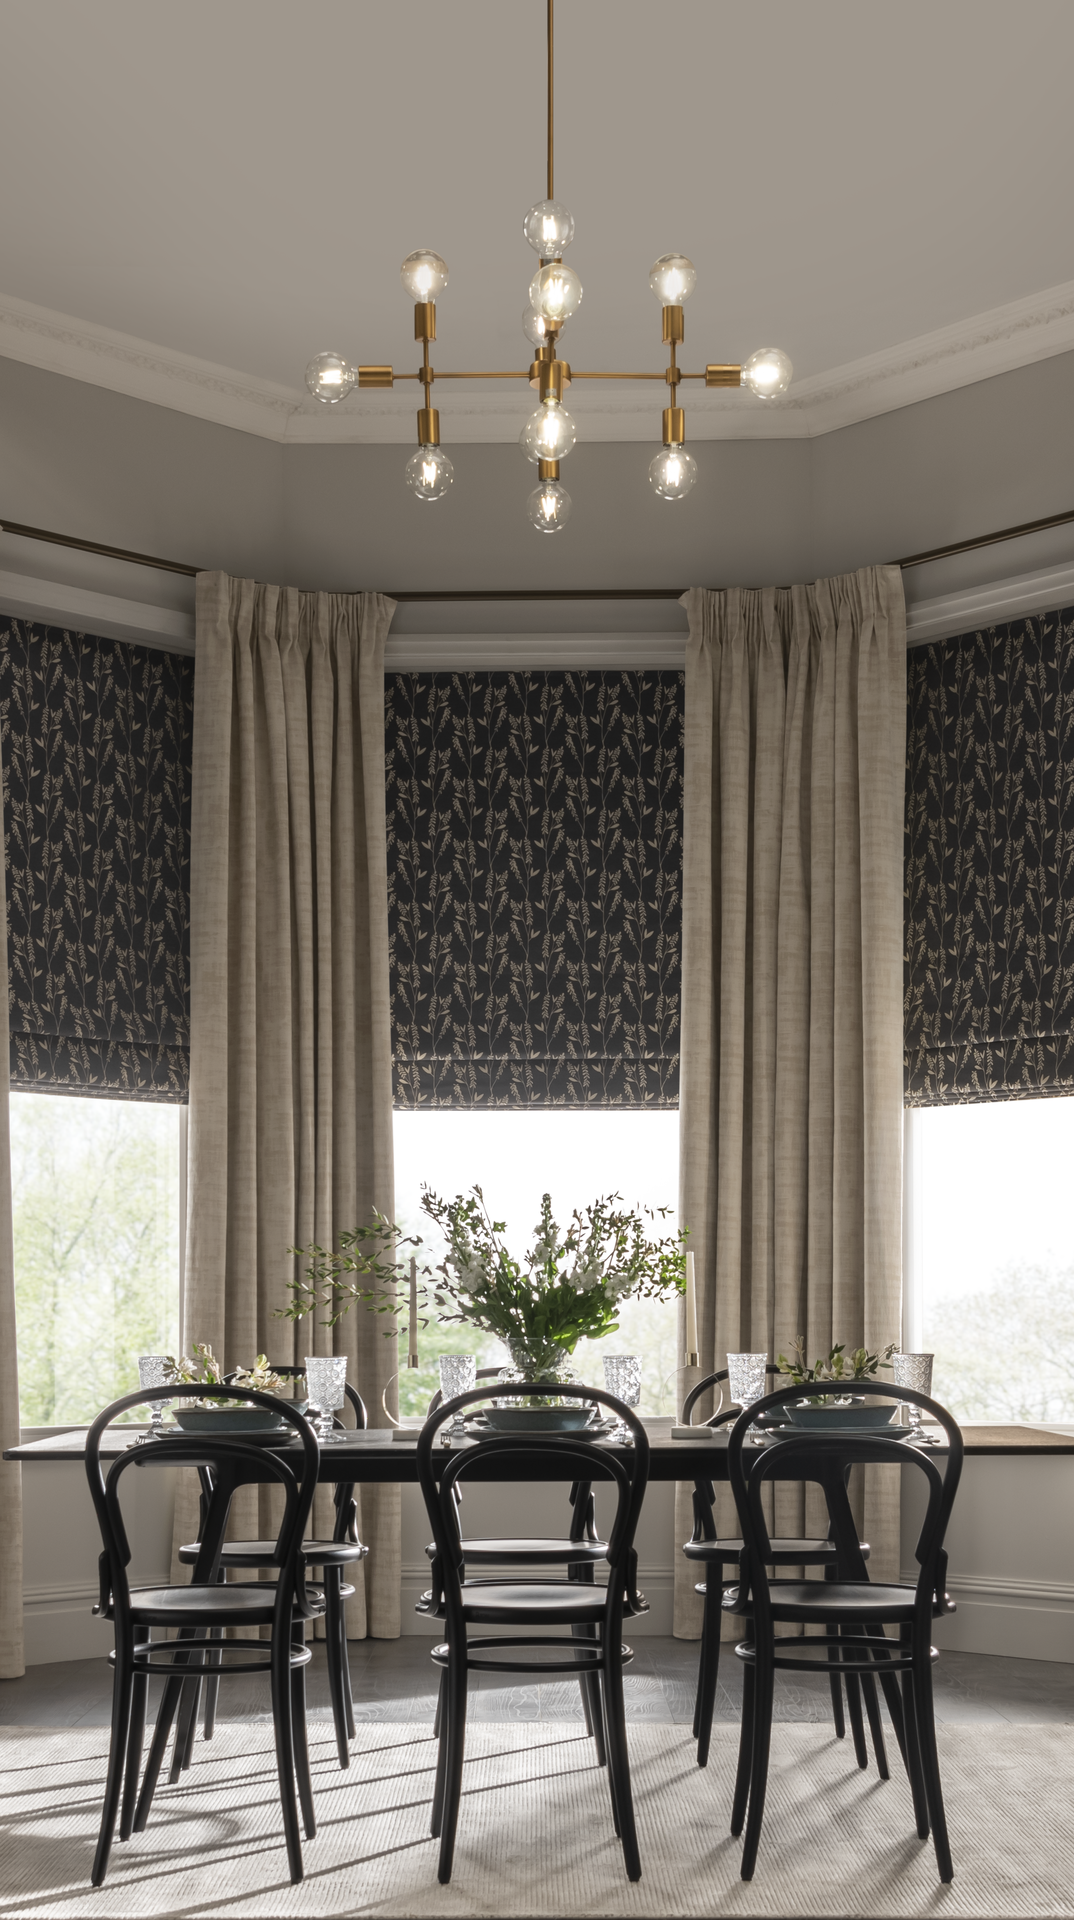 Classic Dining Room Ideas   Dining room curtains, Classic dining ...